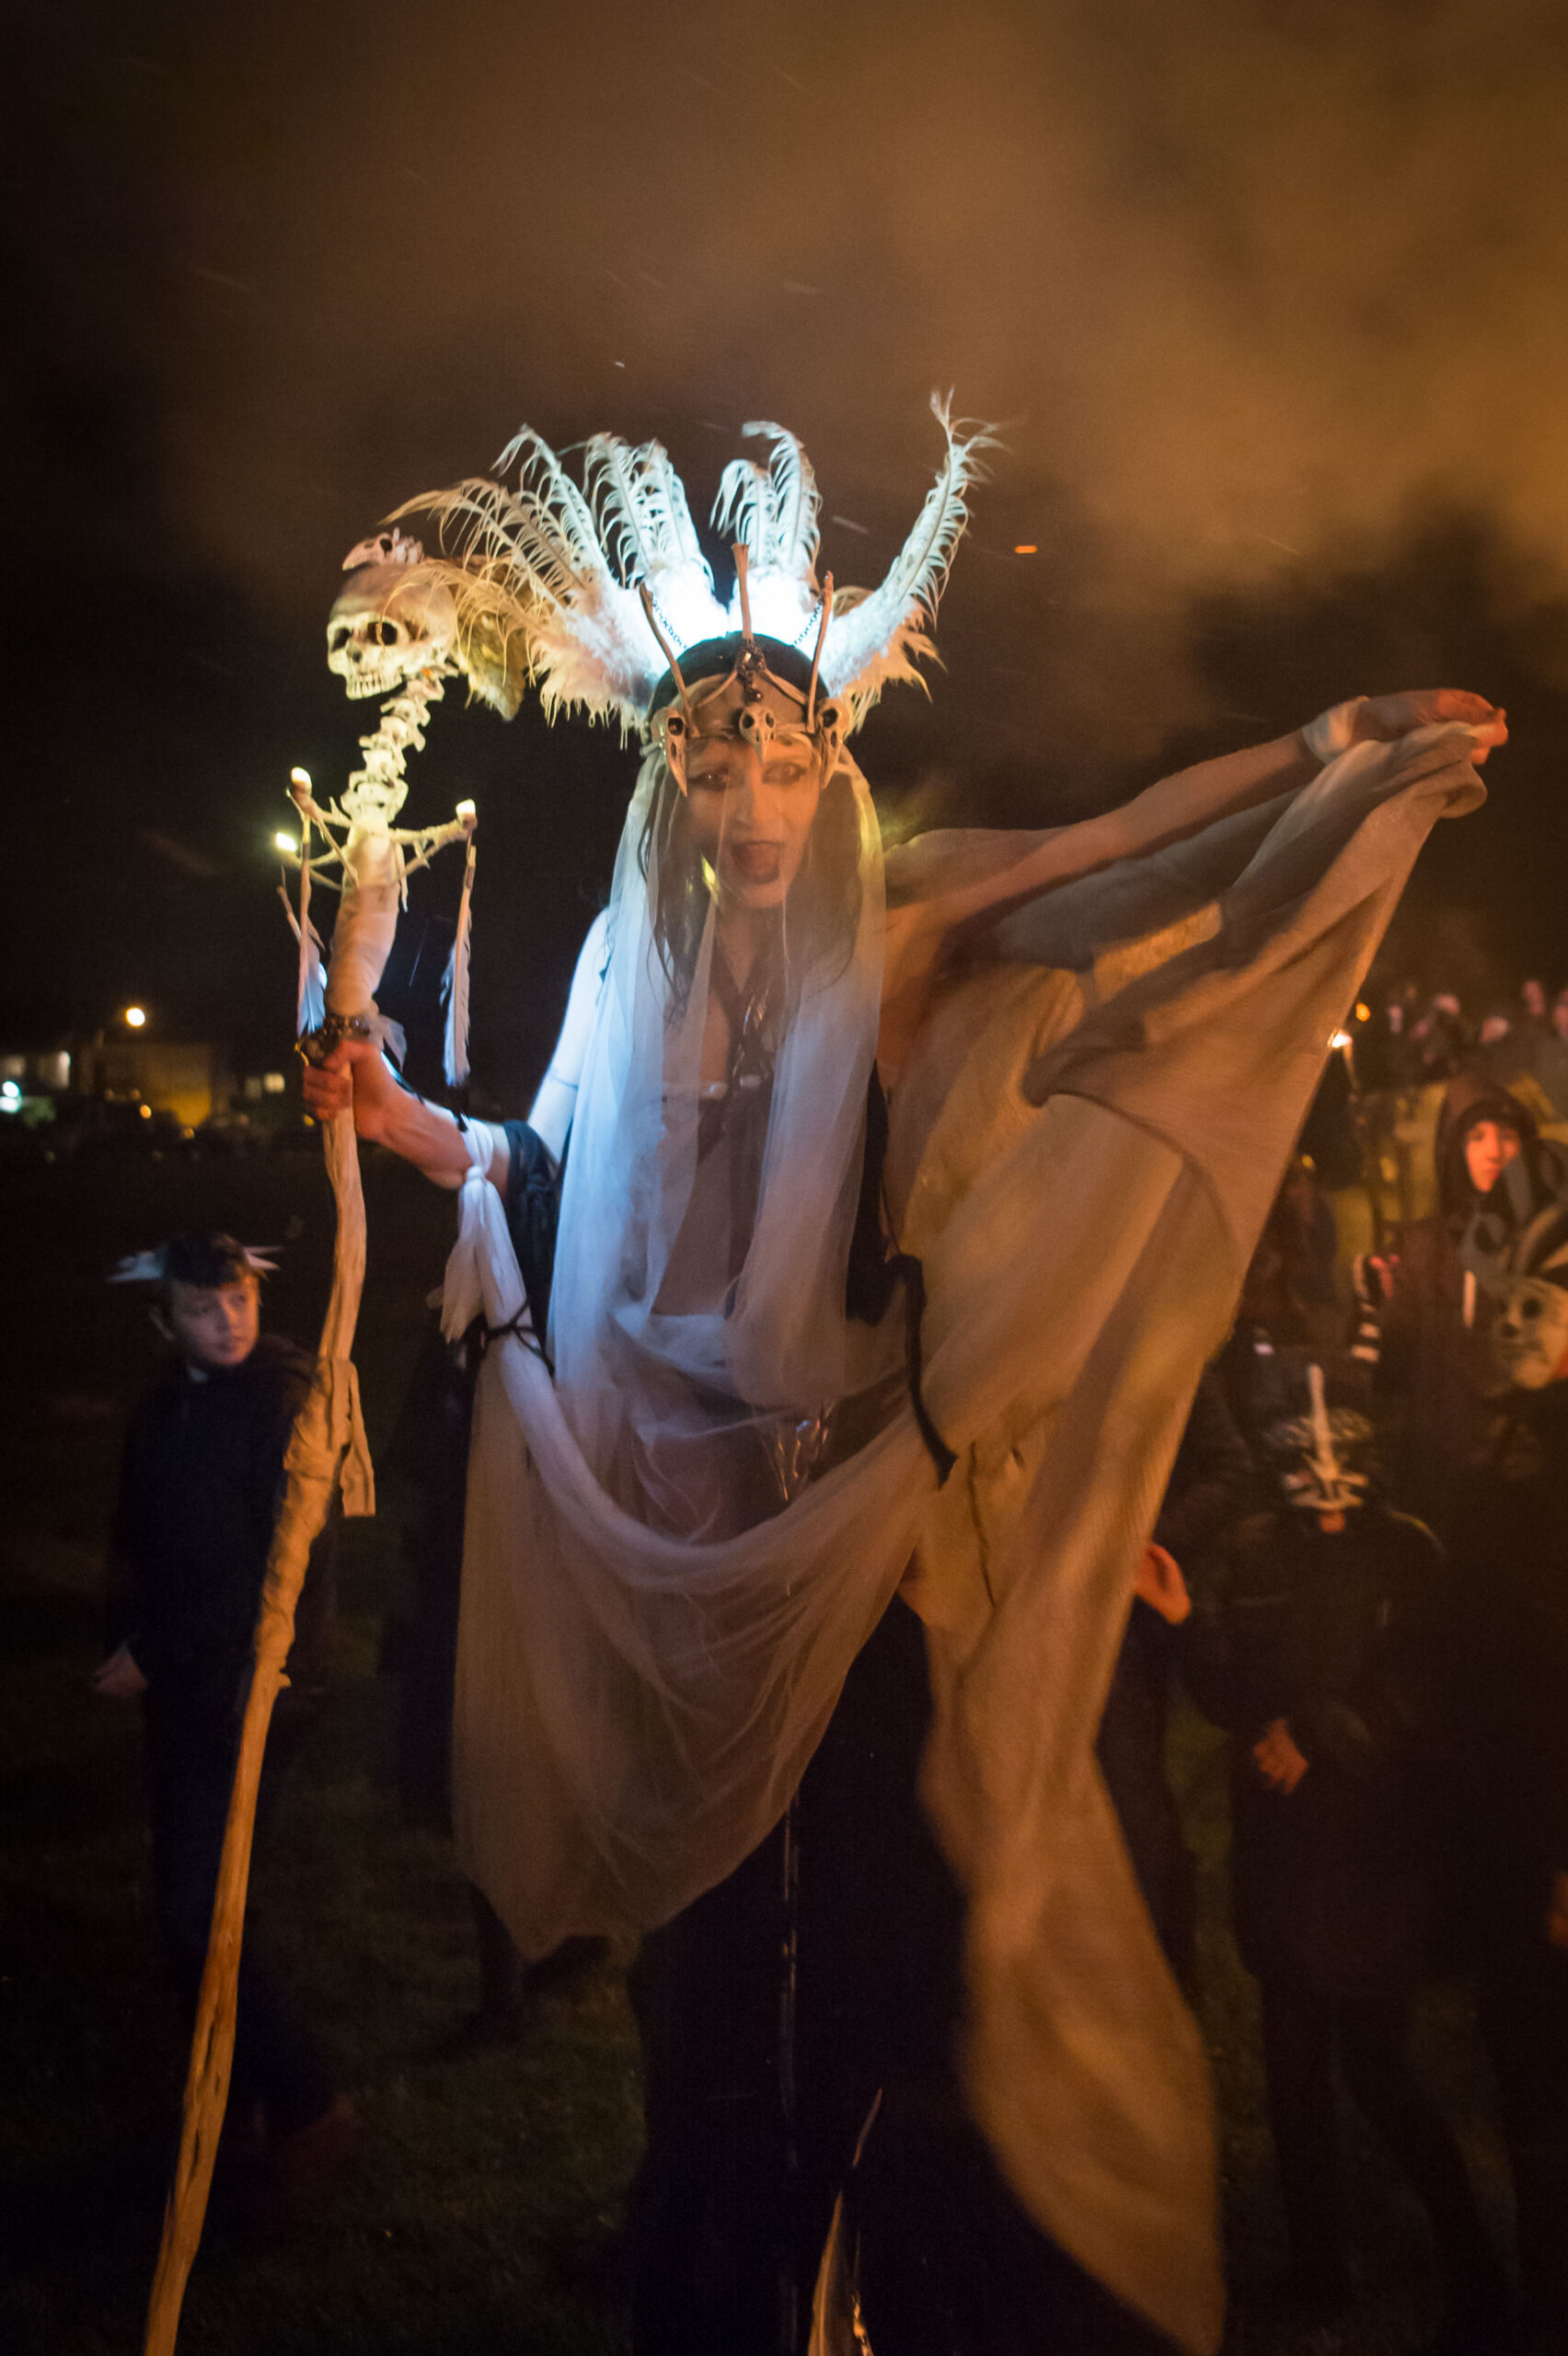 High Priestess at WinterWild Festival  Image Credit - Ray Yeo